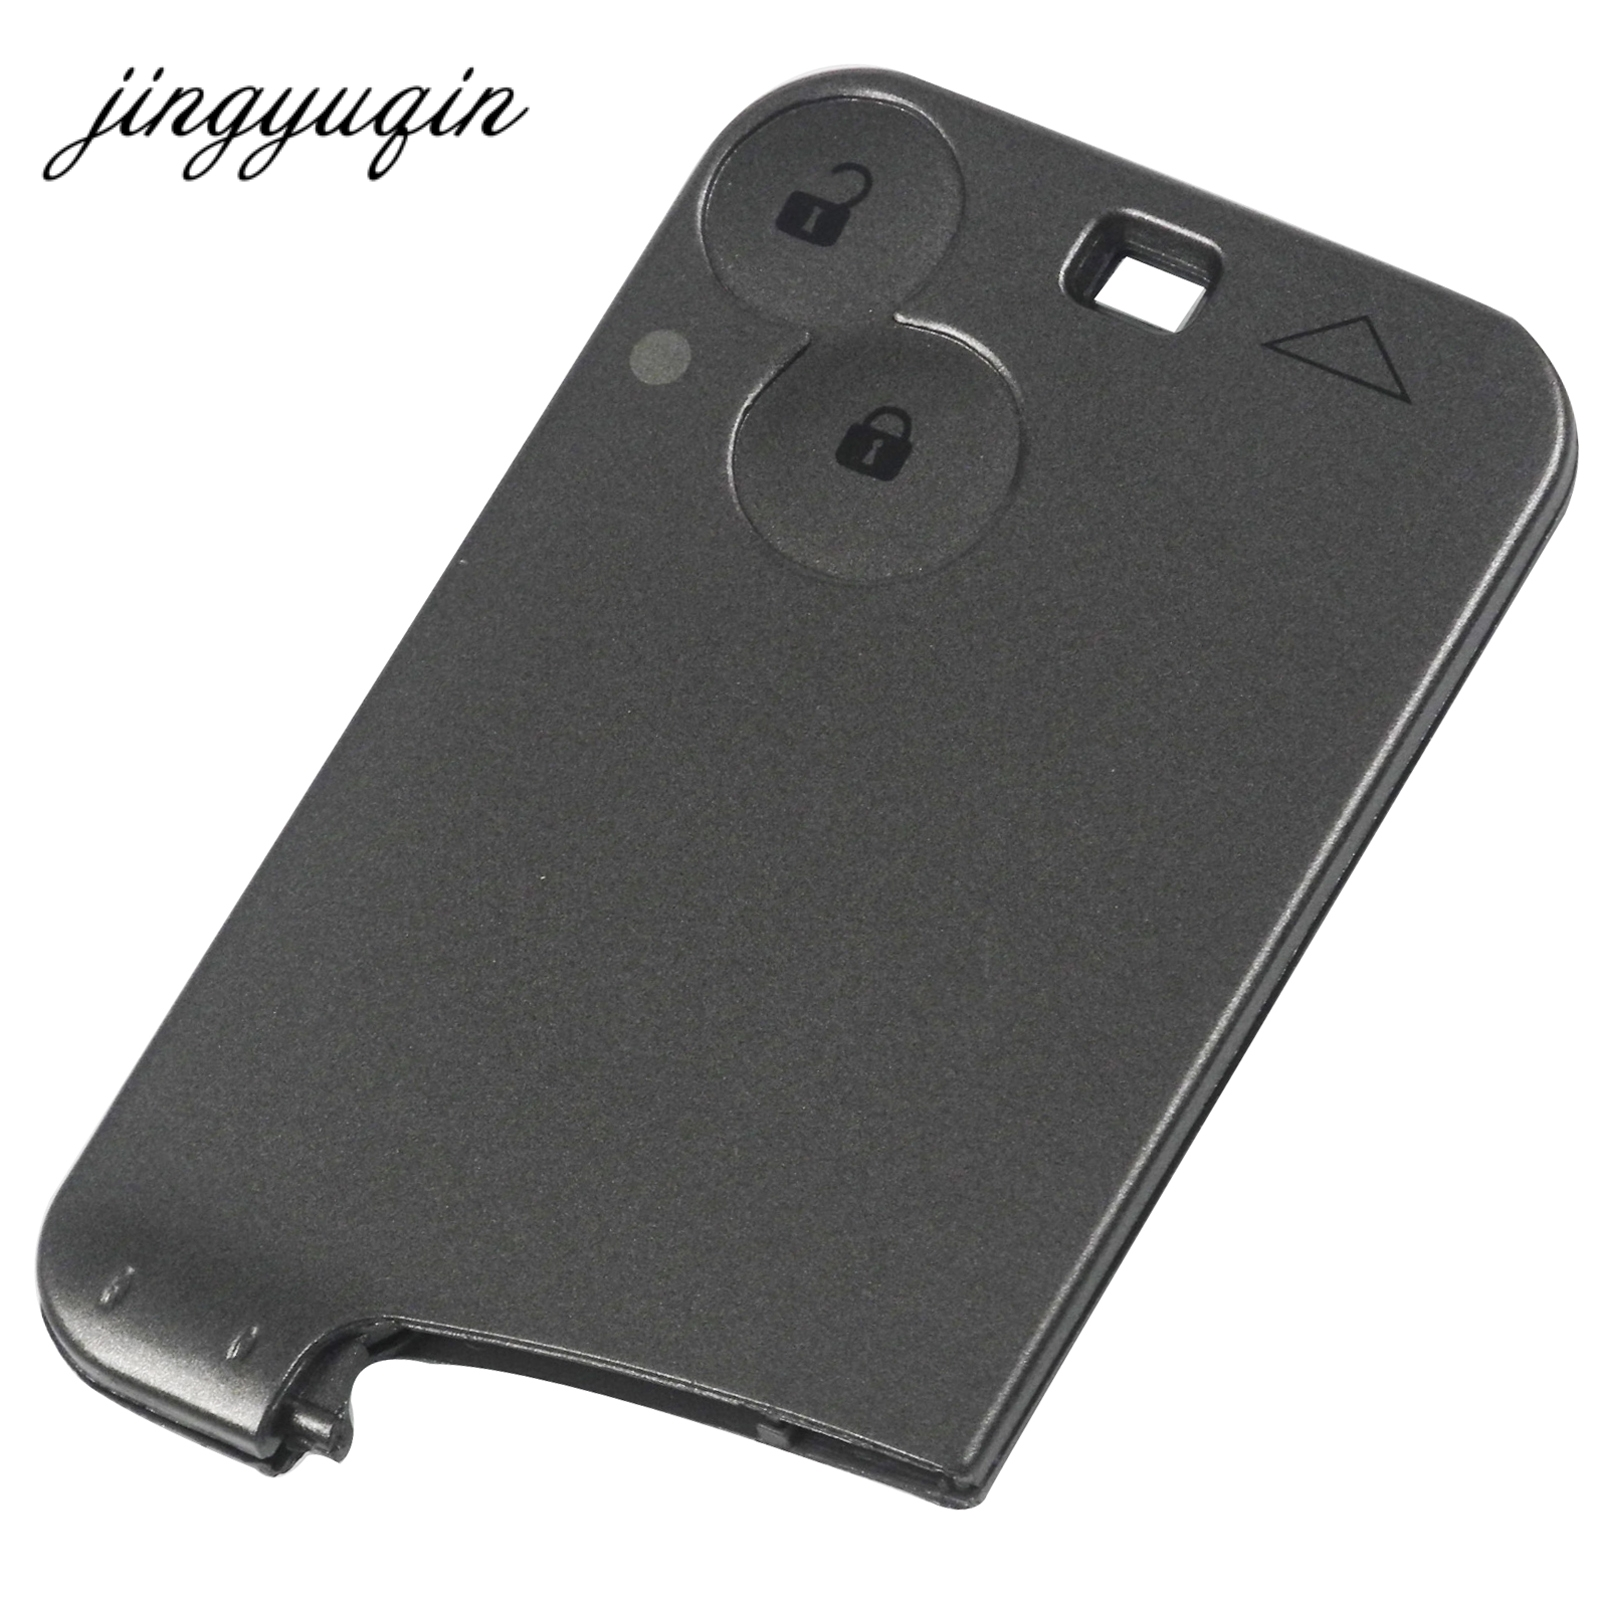 jingyuqin Replacement Key Card Case for Renault Laguna Key Fob Shell 2 Button without bladejingyuqin Replacement Key Card Case for Renault Laguna Key Fob Shell 2 Button without blade